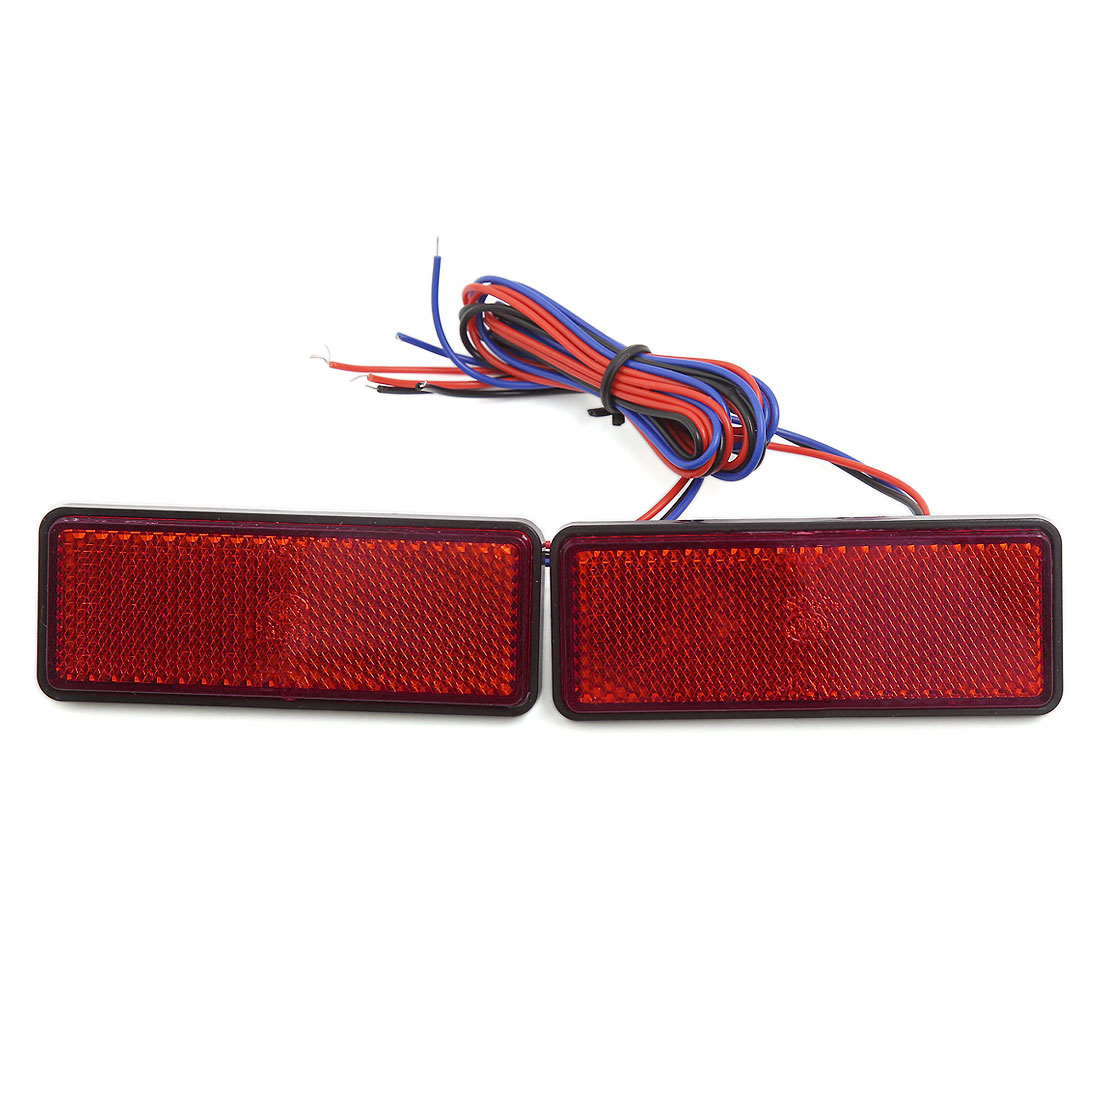 2pcs Red Motorcycle Car LED Light Rectangle Reflector Tail Brake Marker